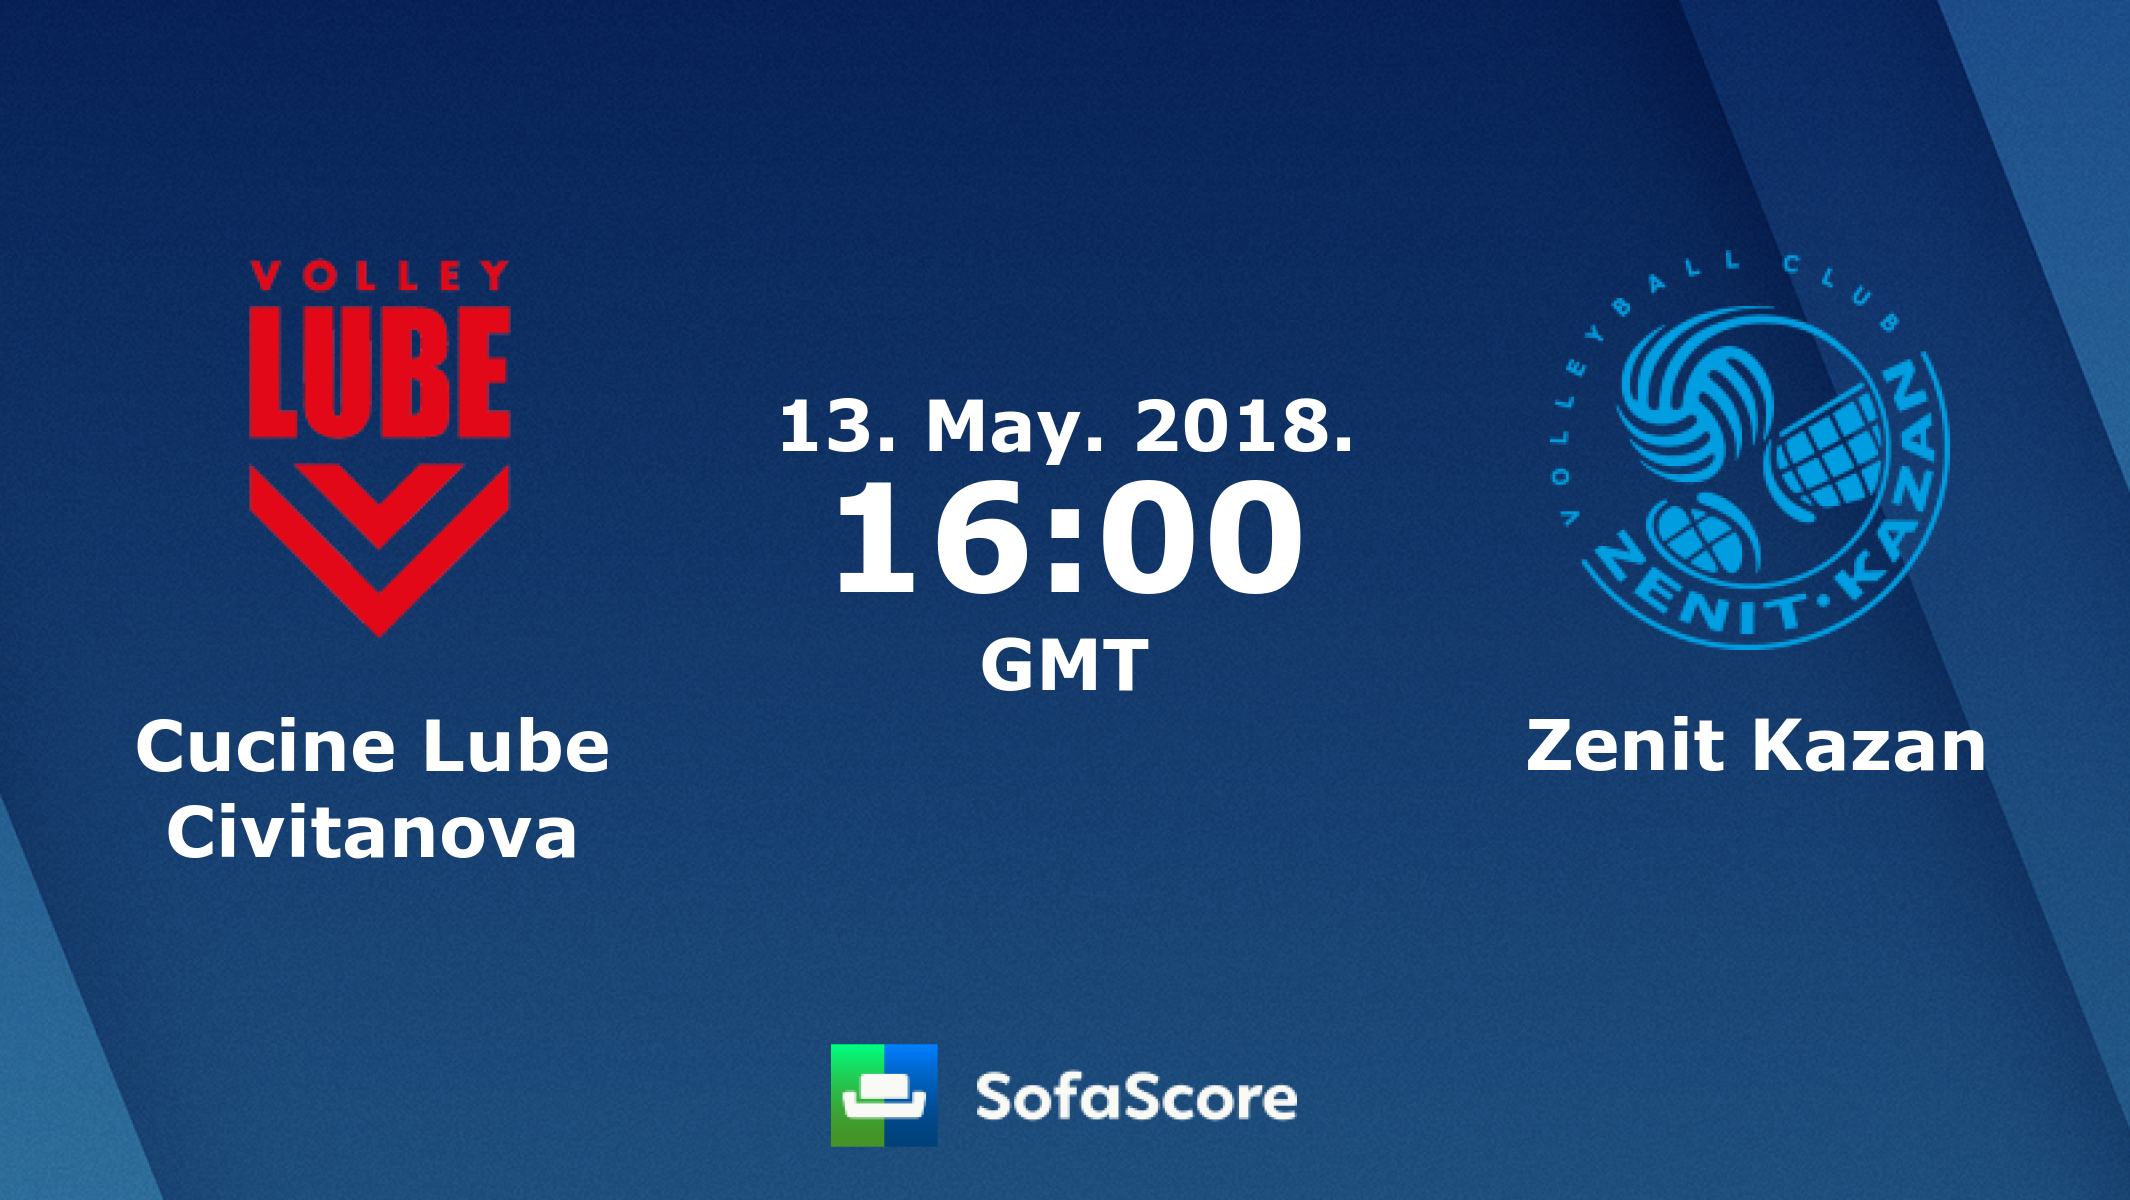 Cucine Lube Civitanova Zawodnicy Cucine Lube Civitanova Zenit Kazan Live Score Video